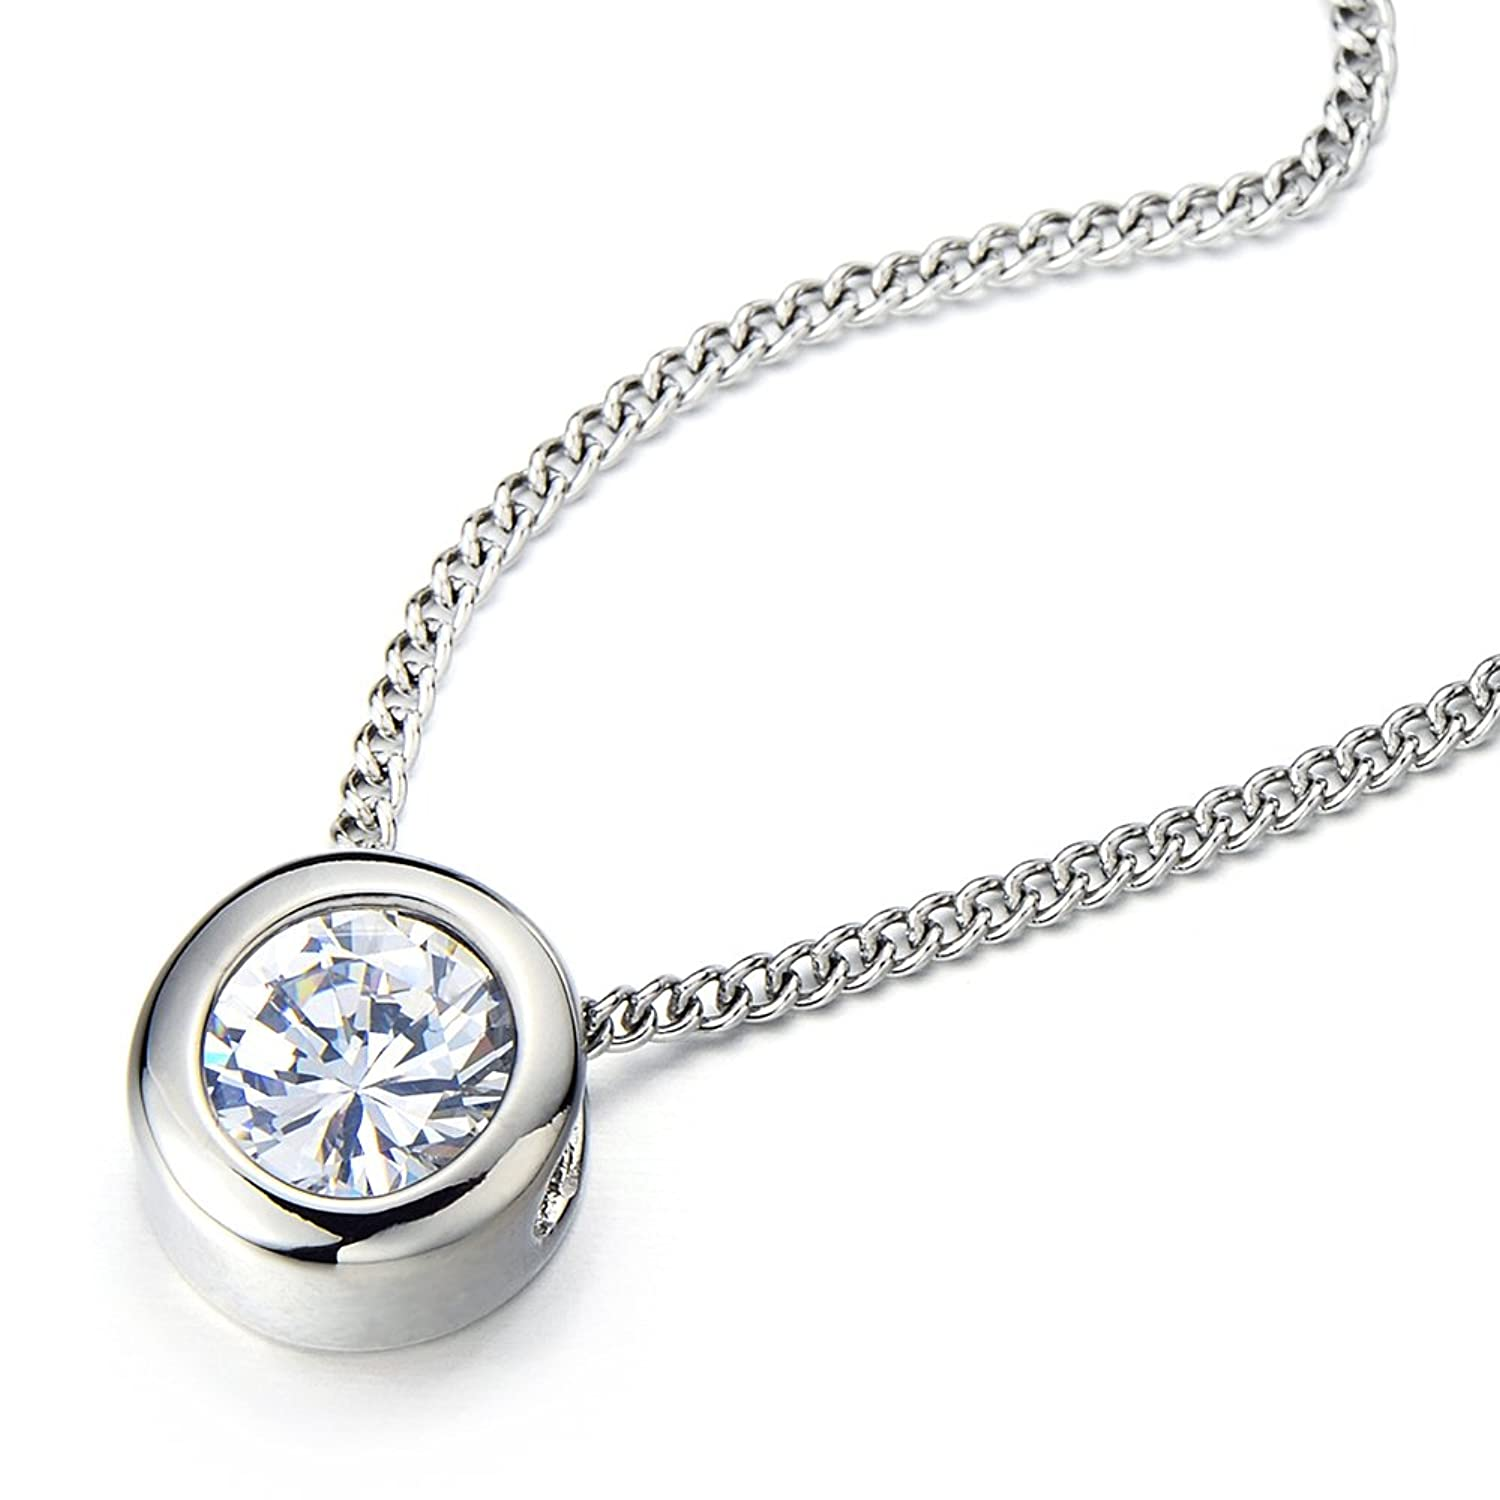 inches steel necklace stainless com chain dp set with solitaire zirconia cubic bezel jewelry round amazon pendant